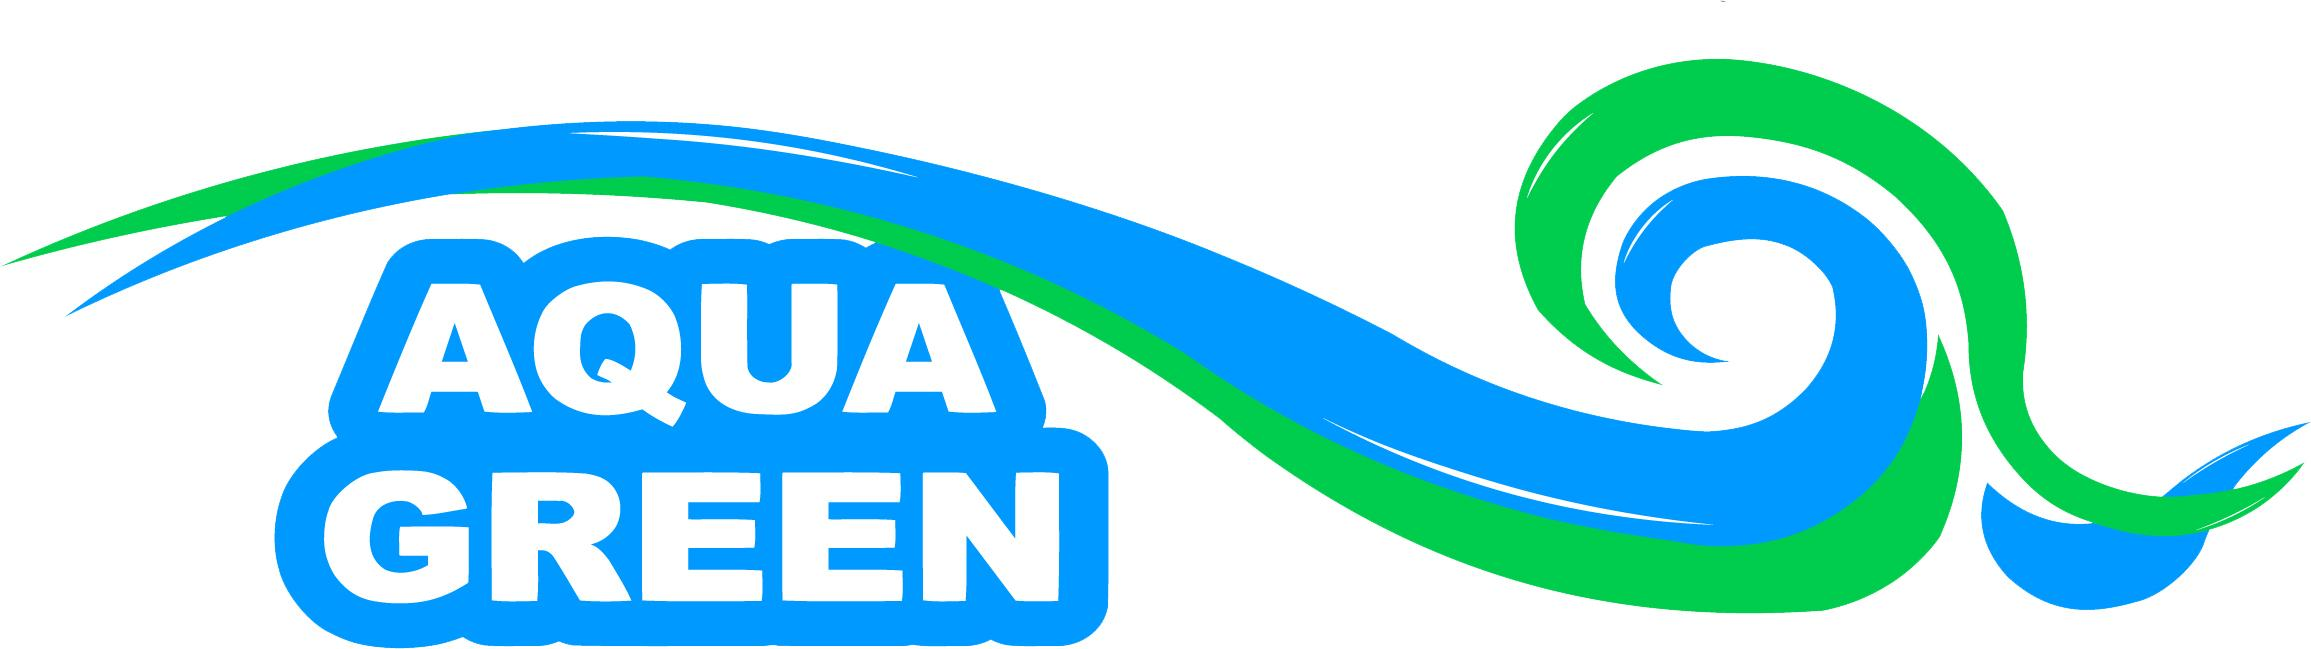 aquagreen logo_4